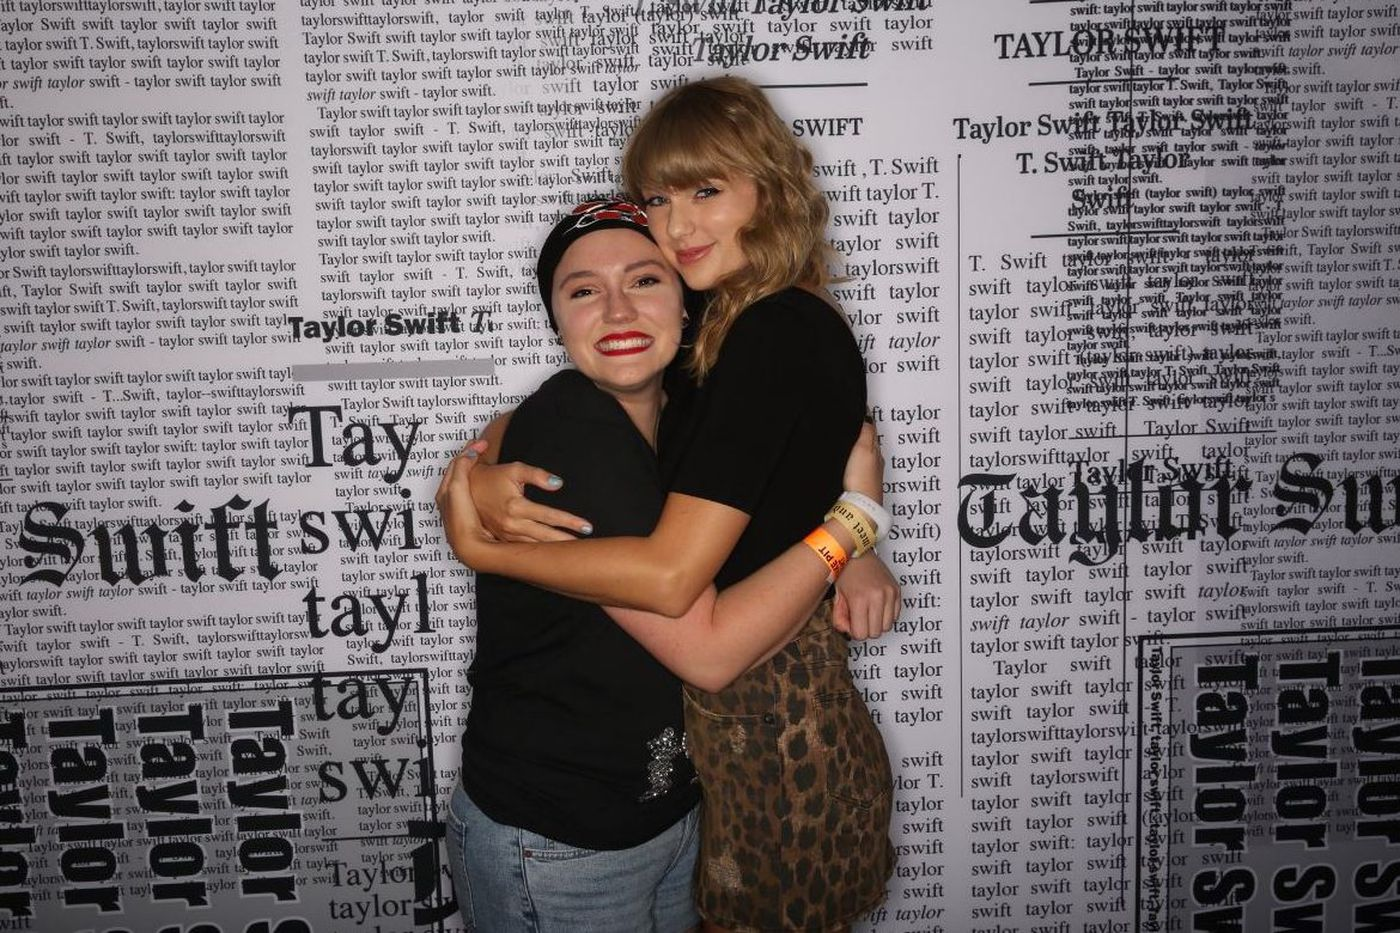 Scranton woman fighting cancer meets Taylor Swift in Philly thanks to Meghan McCain